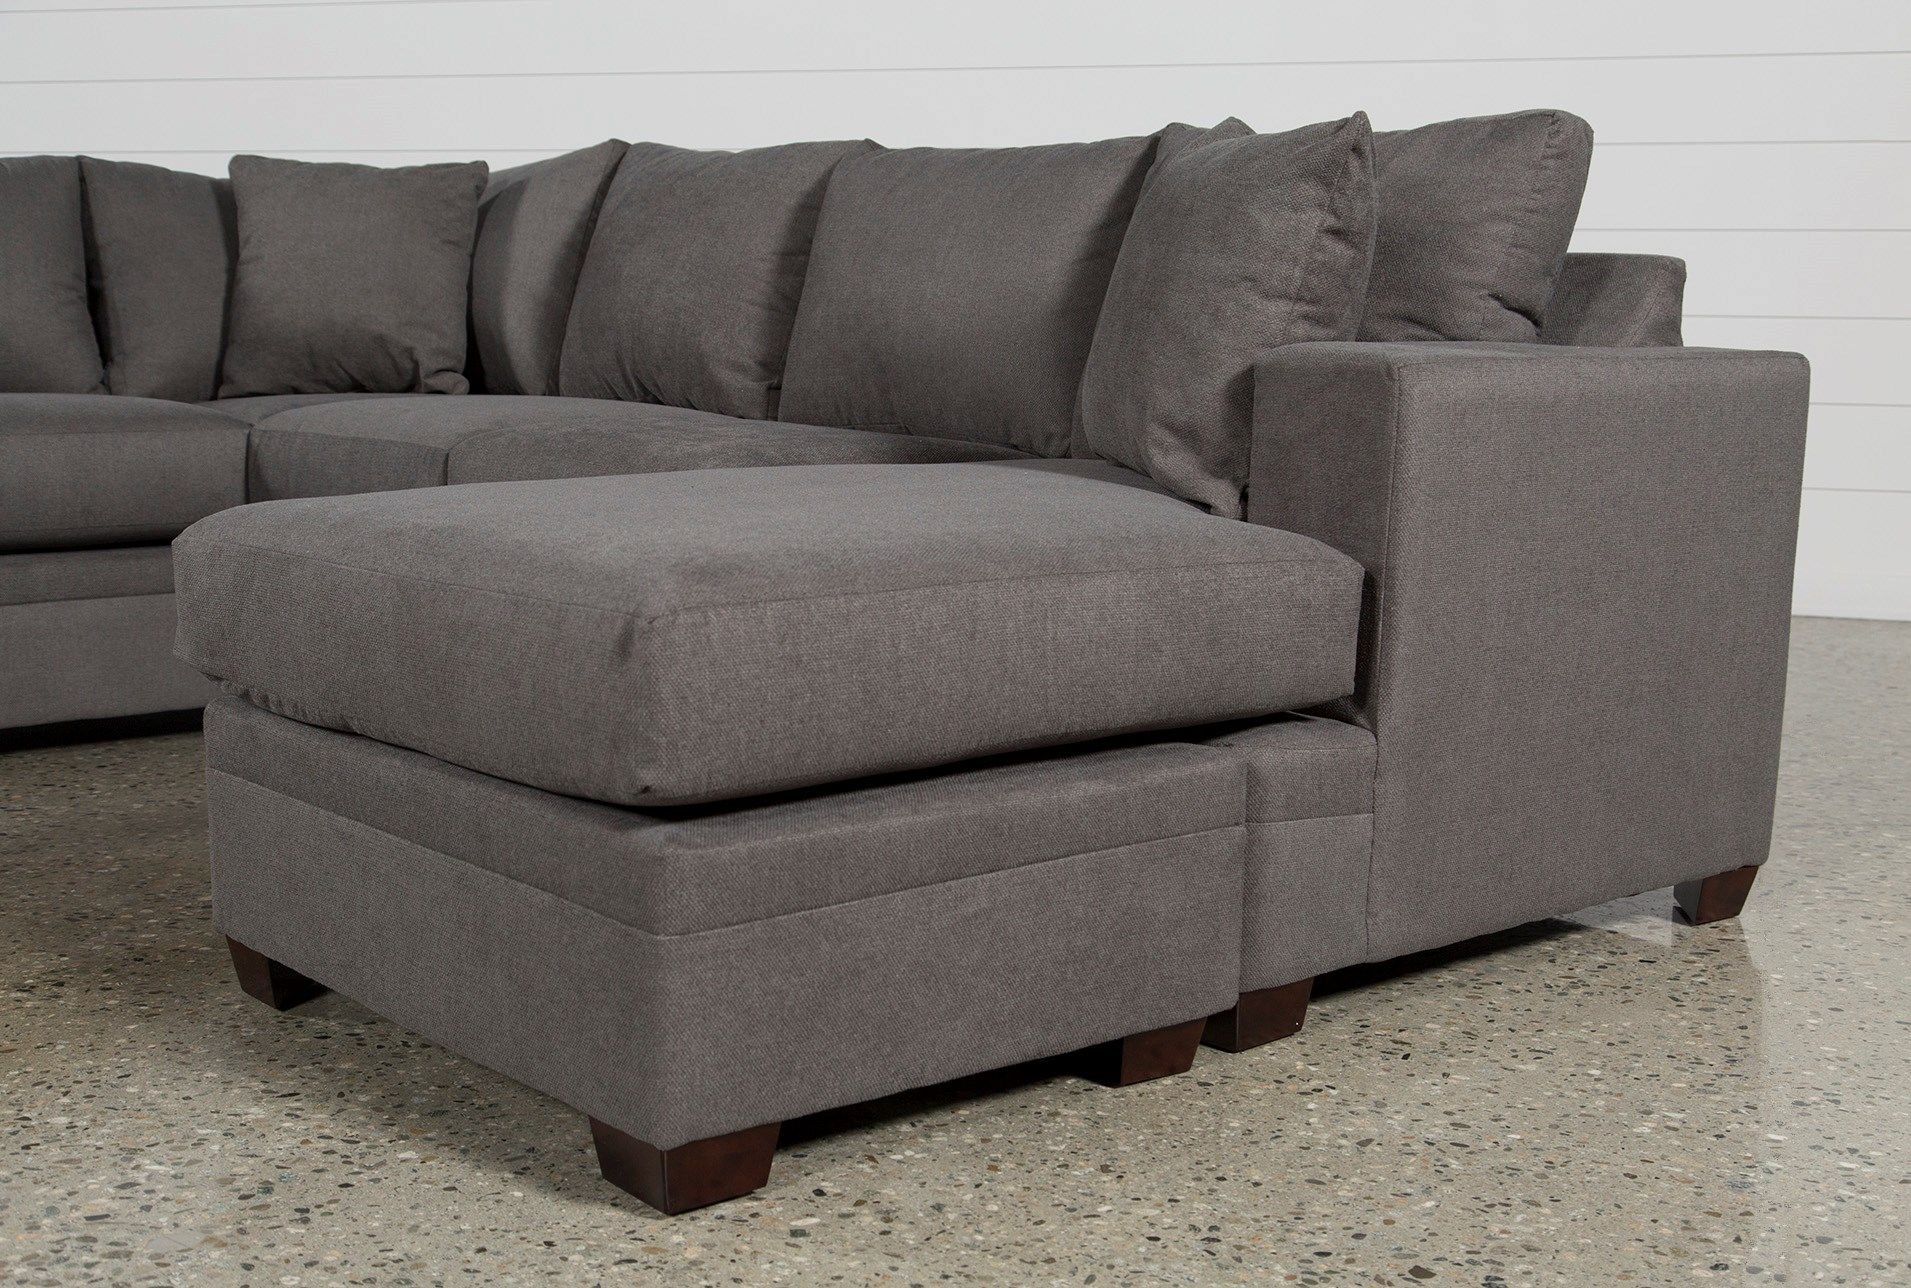 sofa w chaise anfibio bed kerri 2 piece sectional raf pinterest house